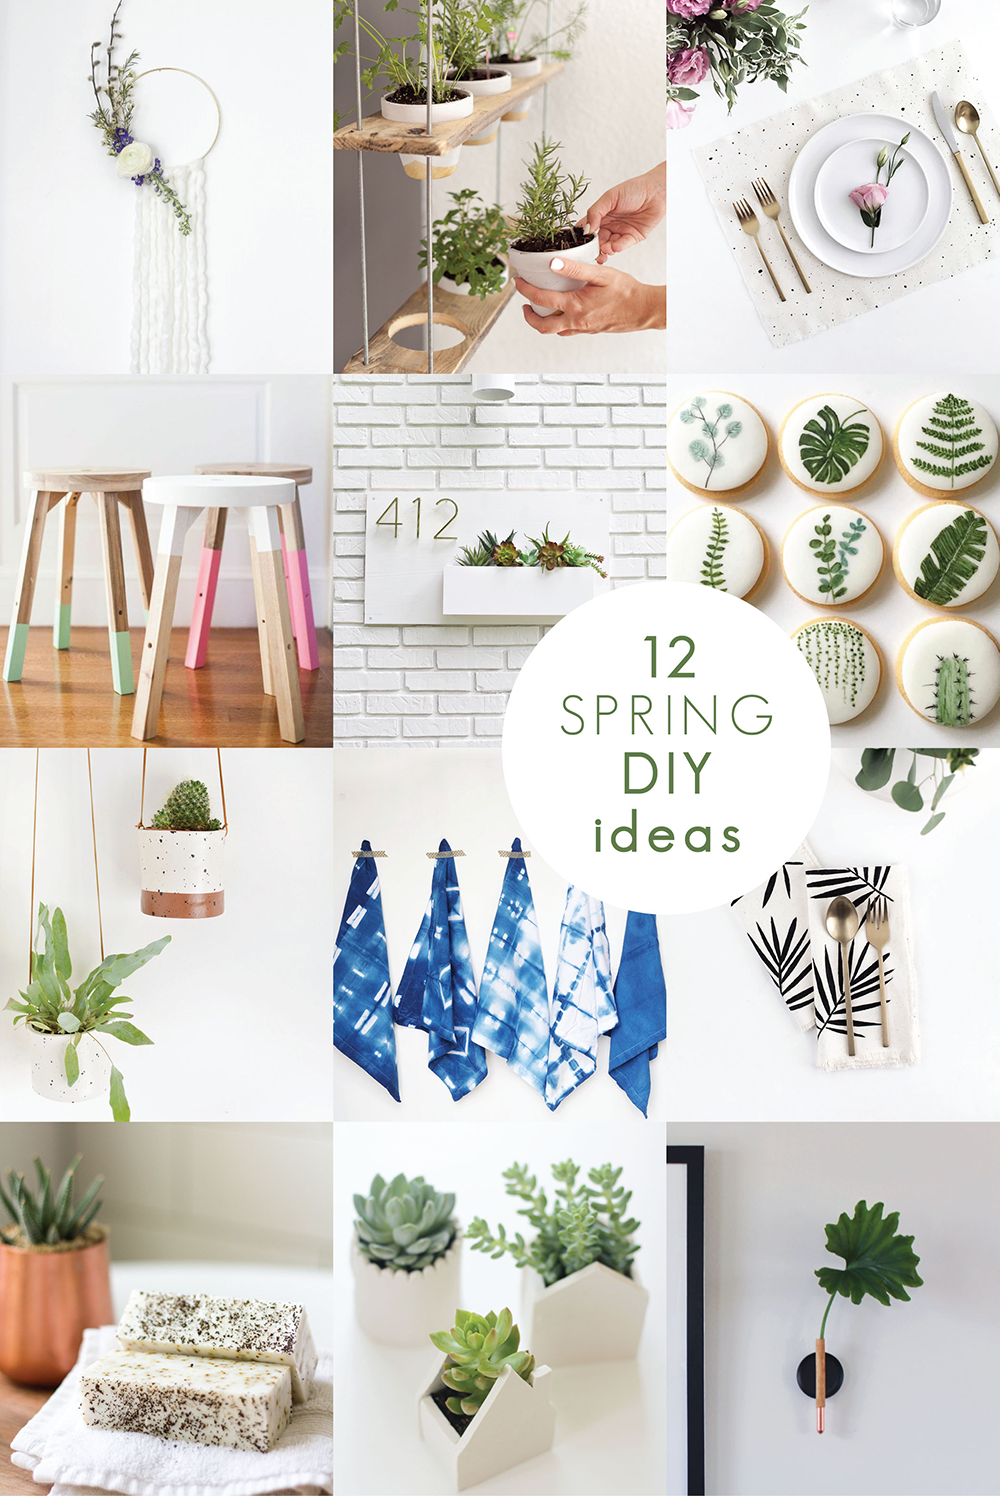 12 Minimalist Spring DIY Ideas